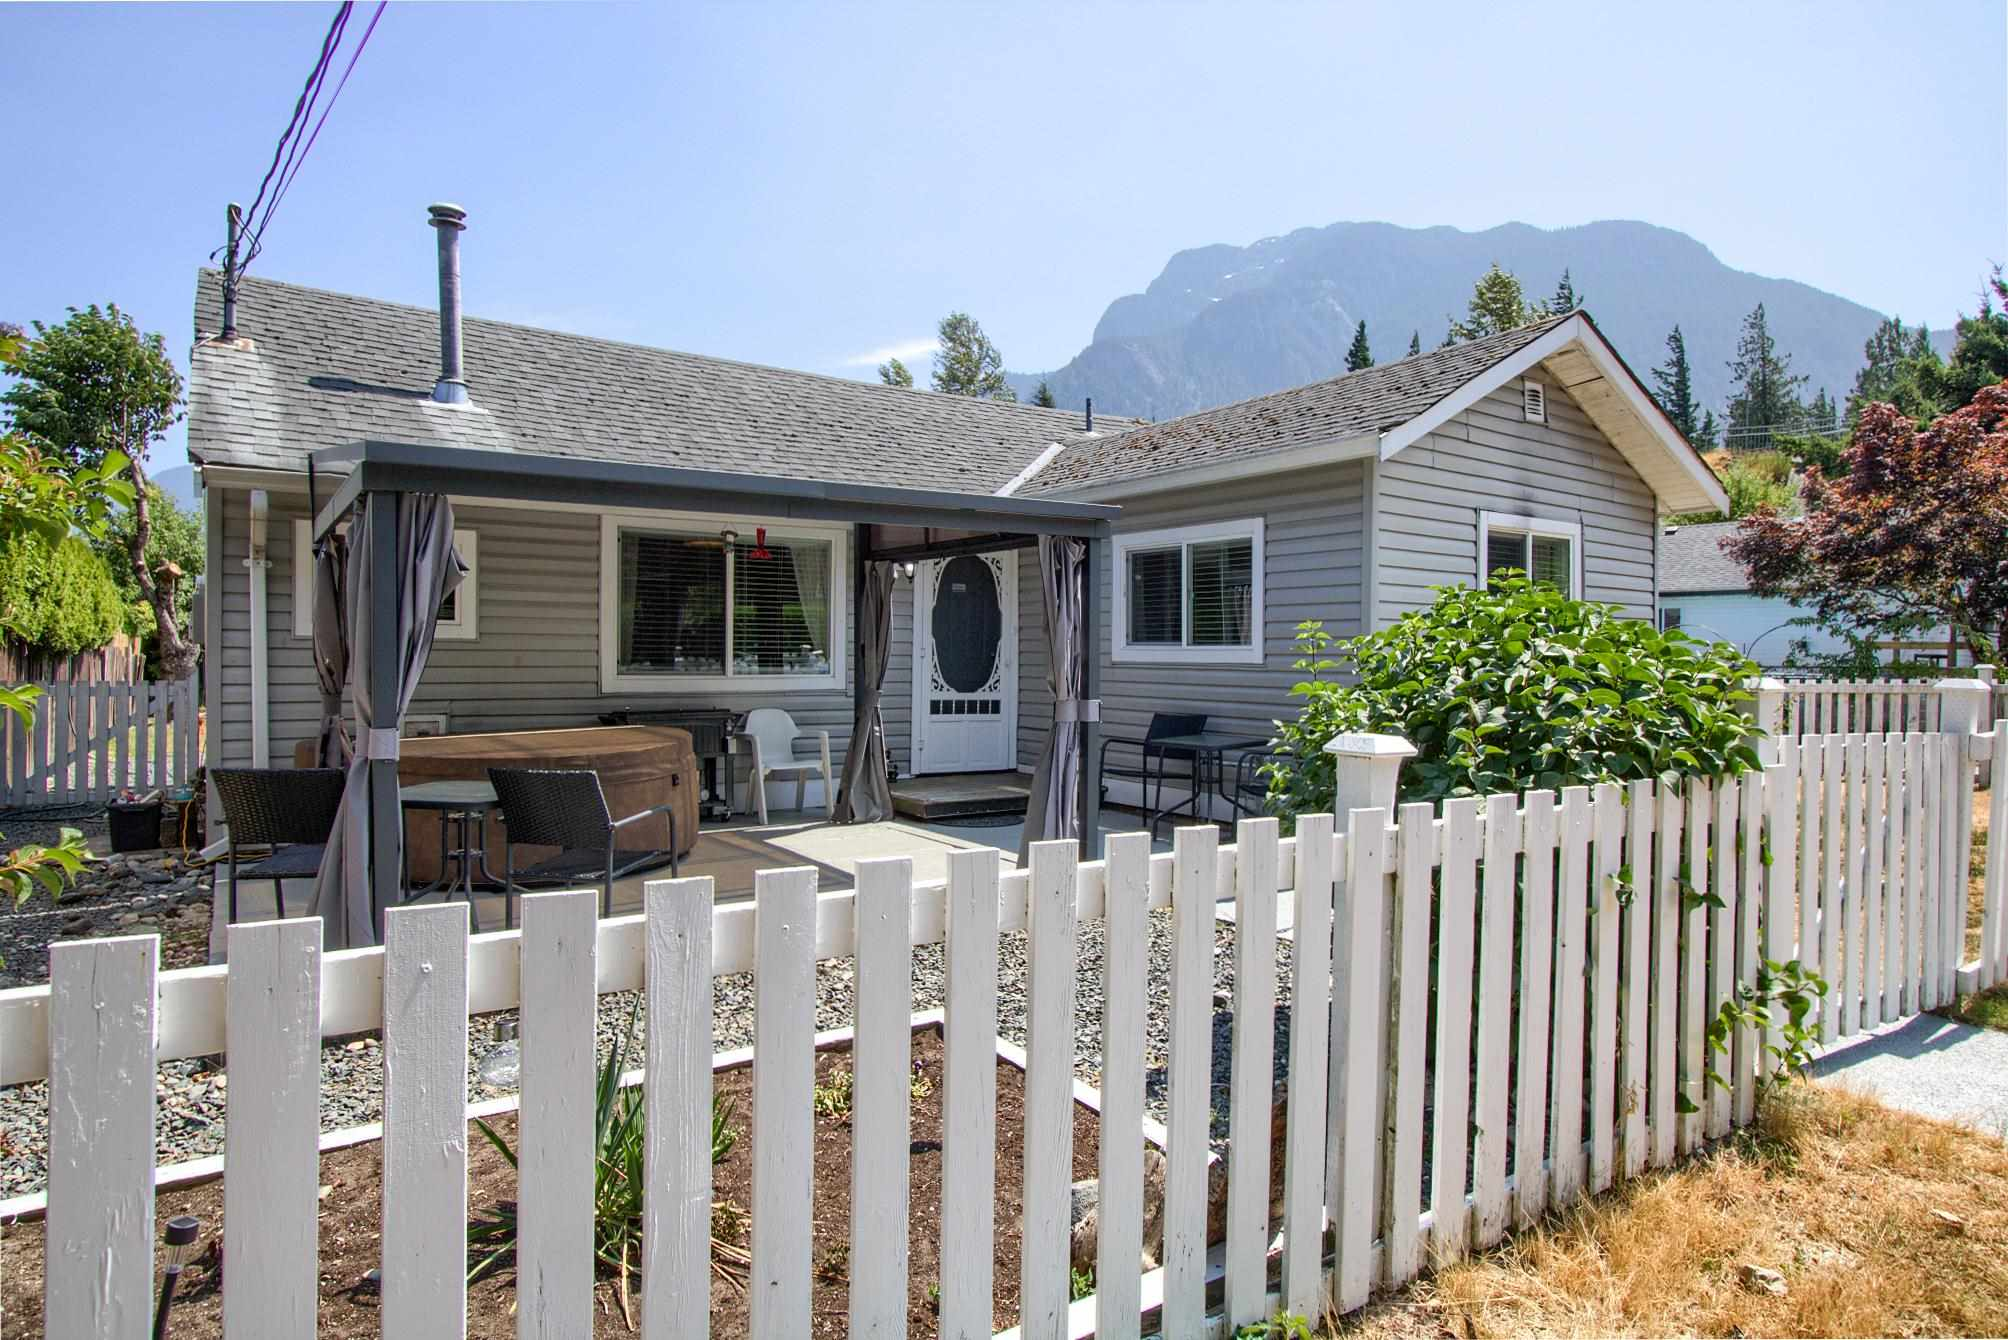 275 WATER AVENUE - Hope Center House/Single Family for sale, 2 Bedrooms (R2602160) - #1